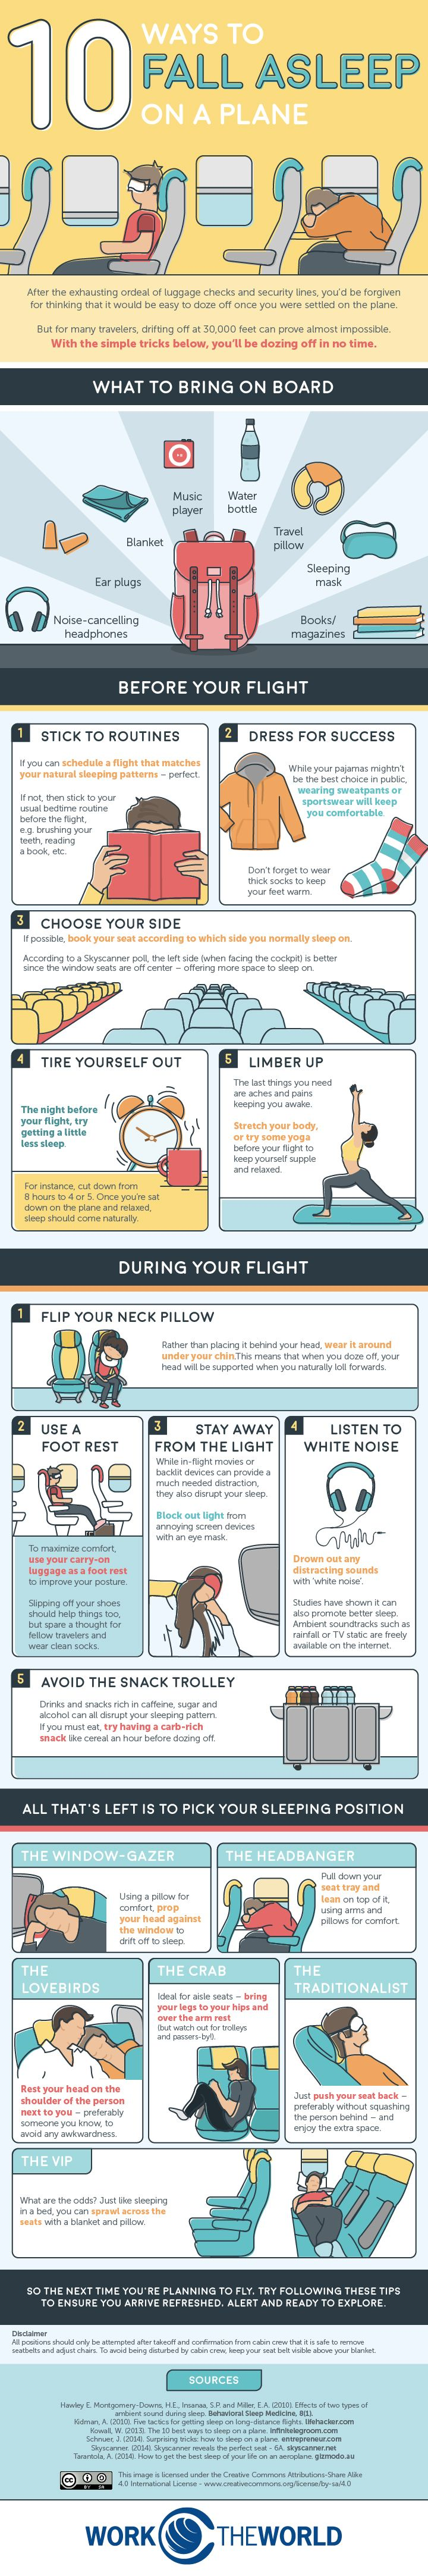 10 ways to fall asleep in an airplane #infographic #travel #tips http://www.earthsattractions.com/how-to-fall-asleep-on-an-airplane-infographic/